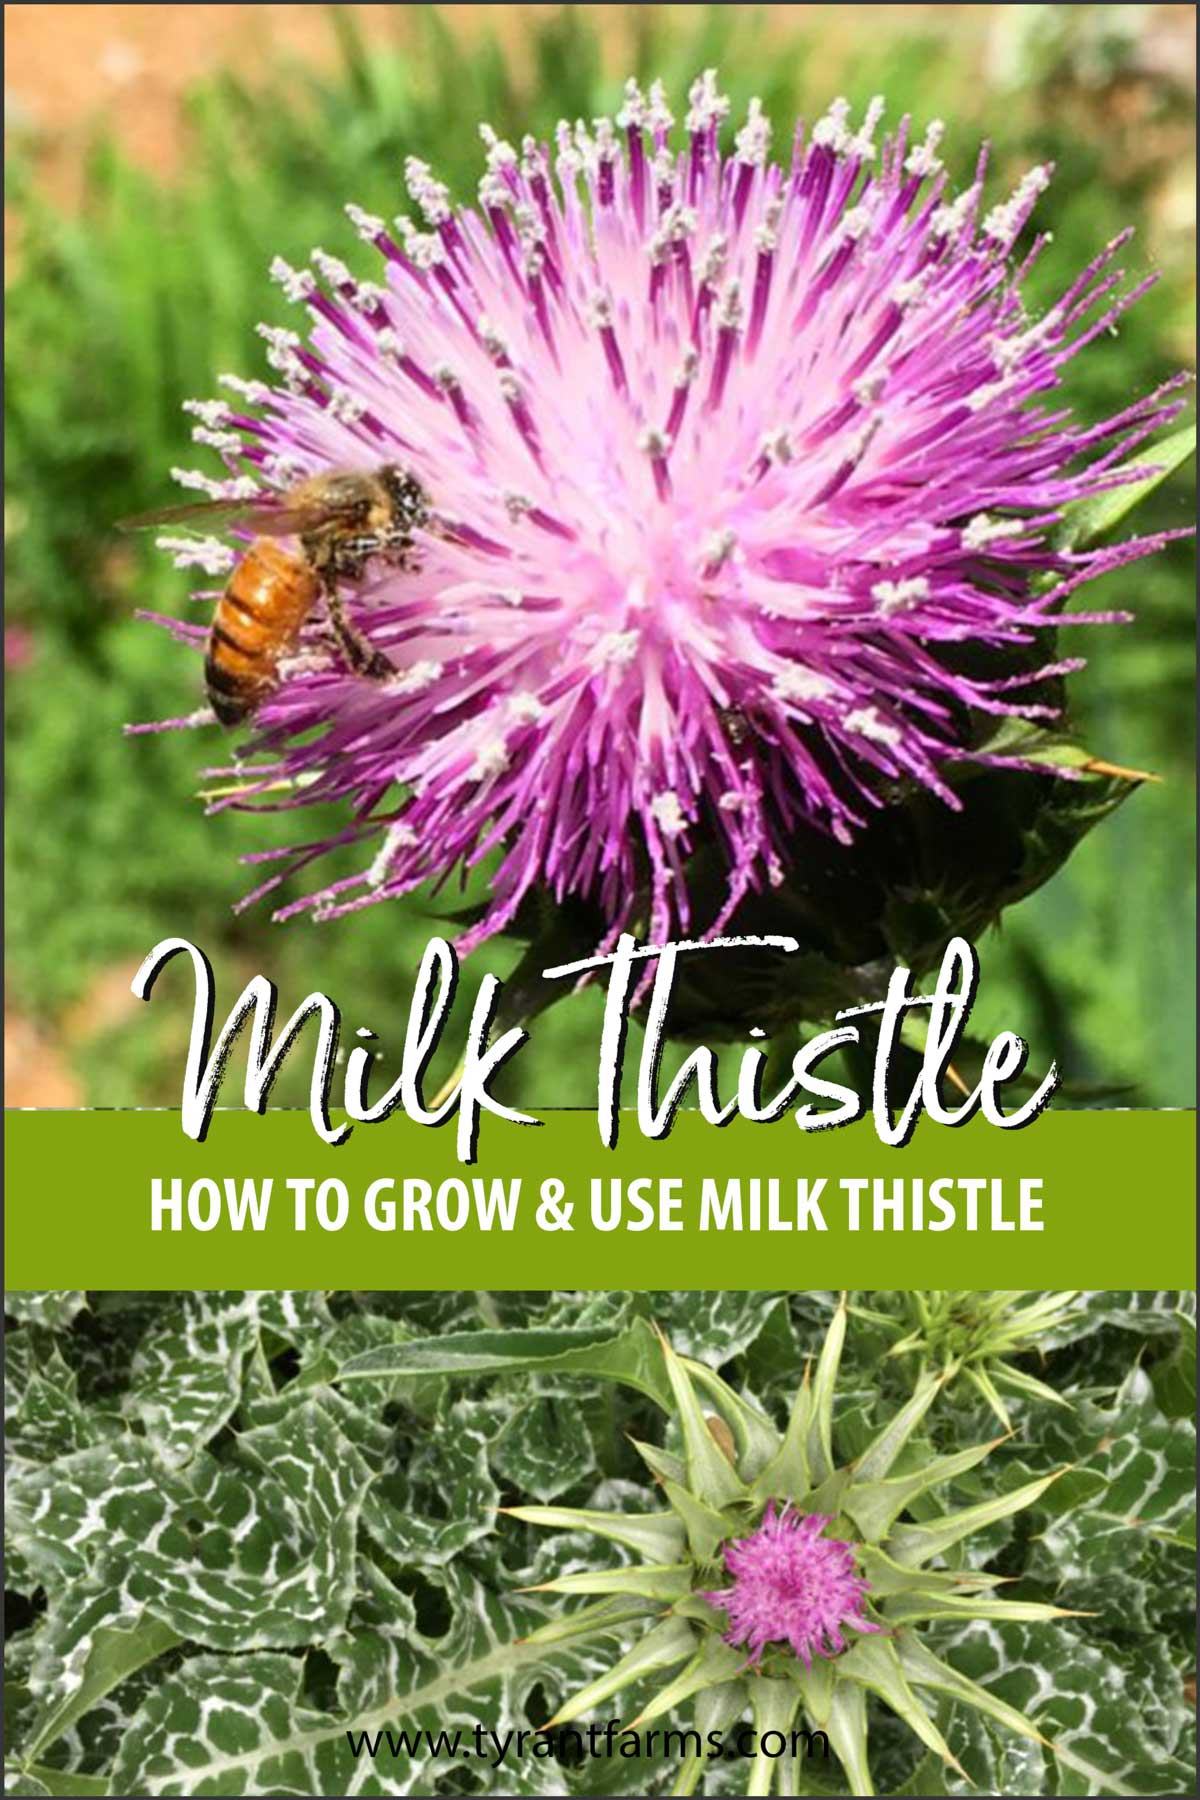 How to grow and use milk thistle